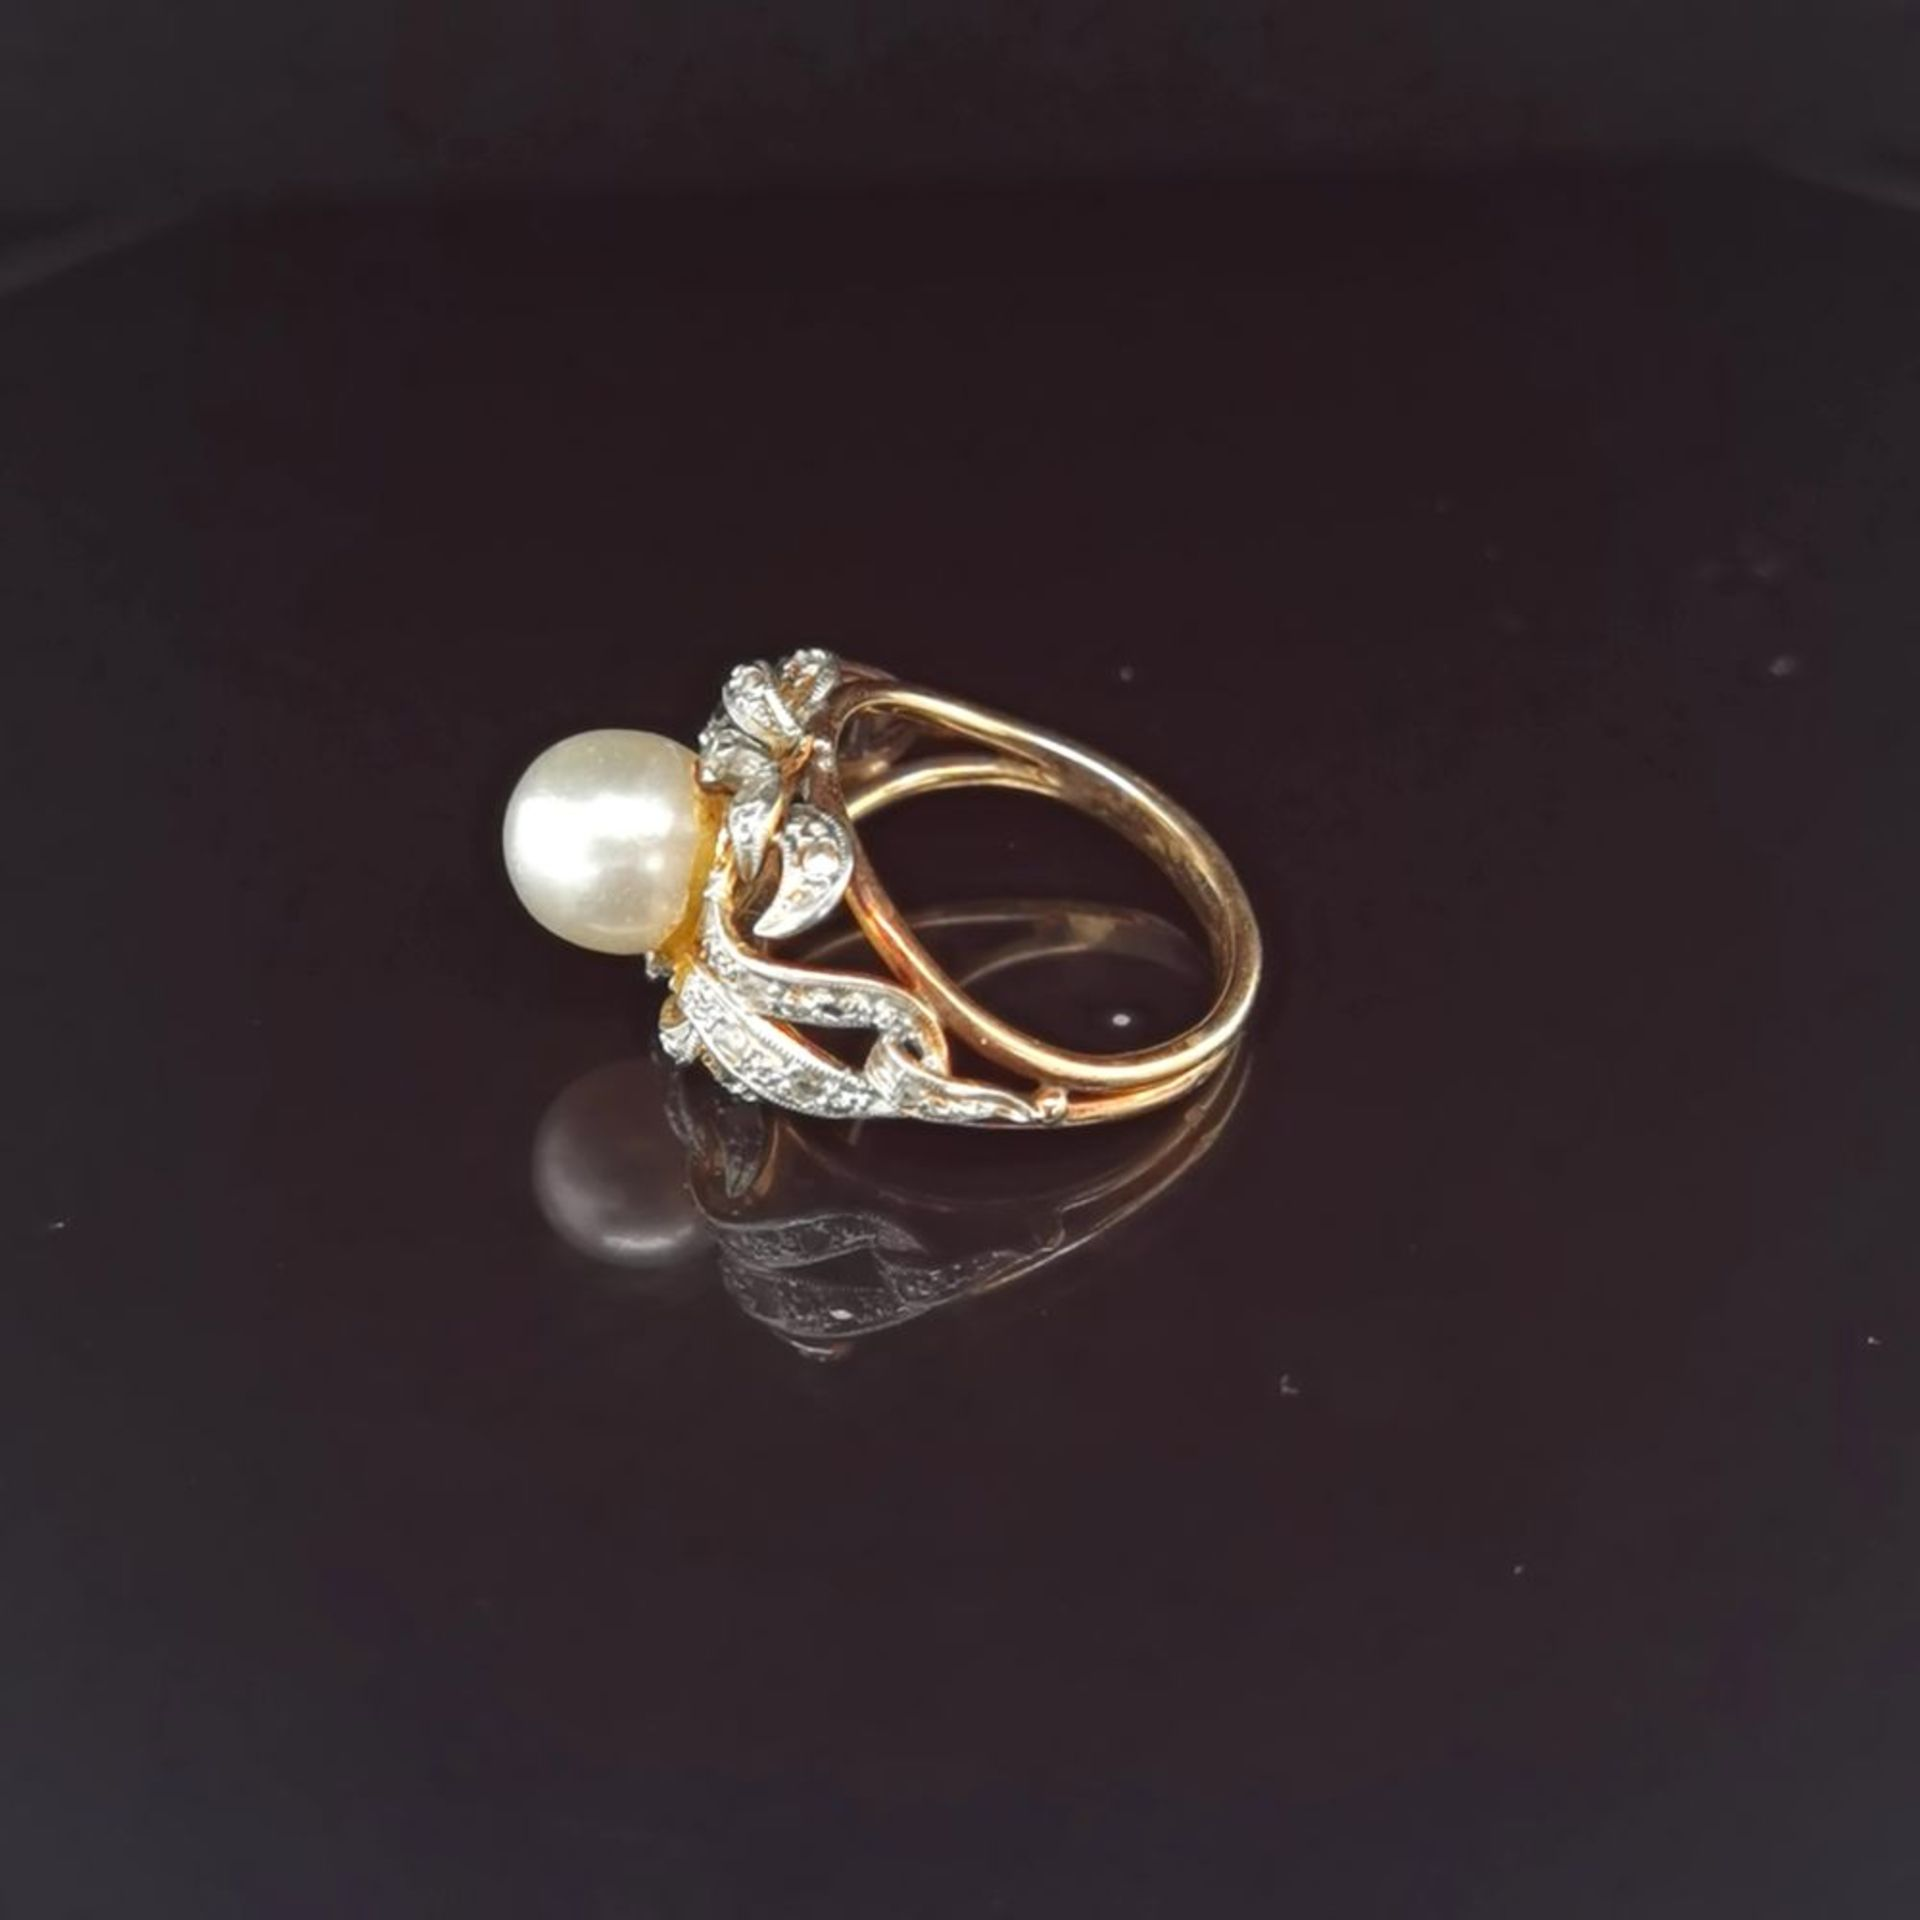 Perl-Diamant-Ring, 585 Gold 5,8 - Image 2 of 3